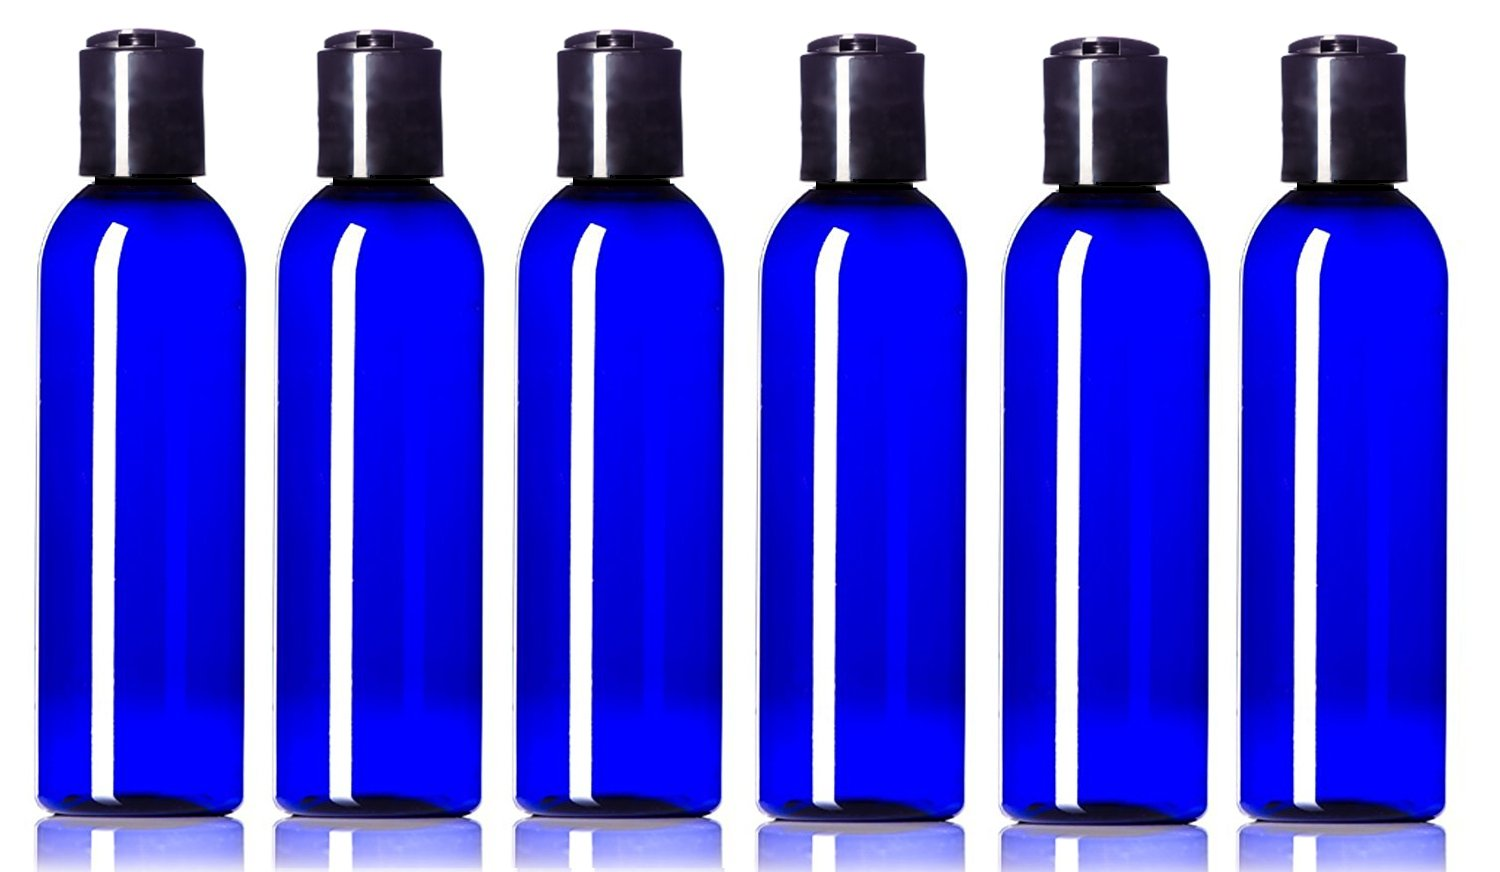 25a6e5fdede3 Newday Bottles, 4 oz Empty Plastic Bottles BPA-Free Leak Proof with Disc  Top Cap Lids Refillable...